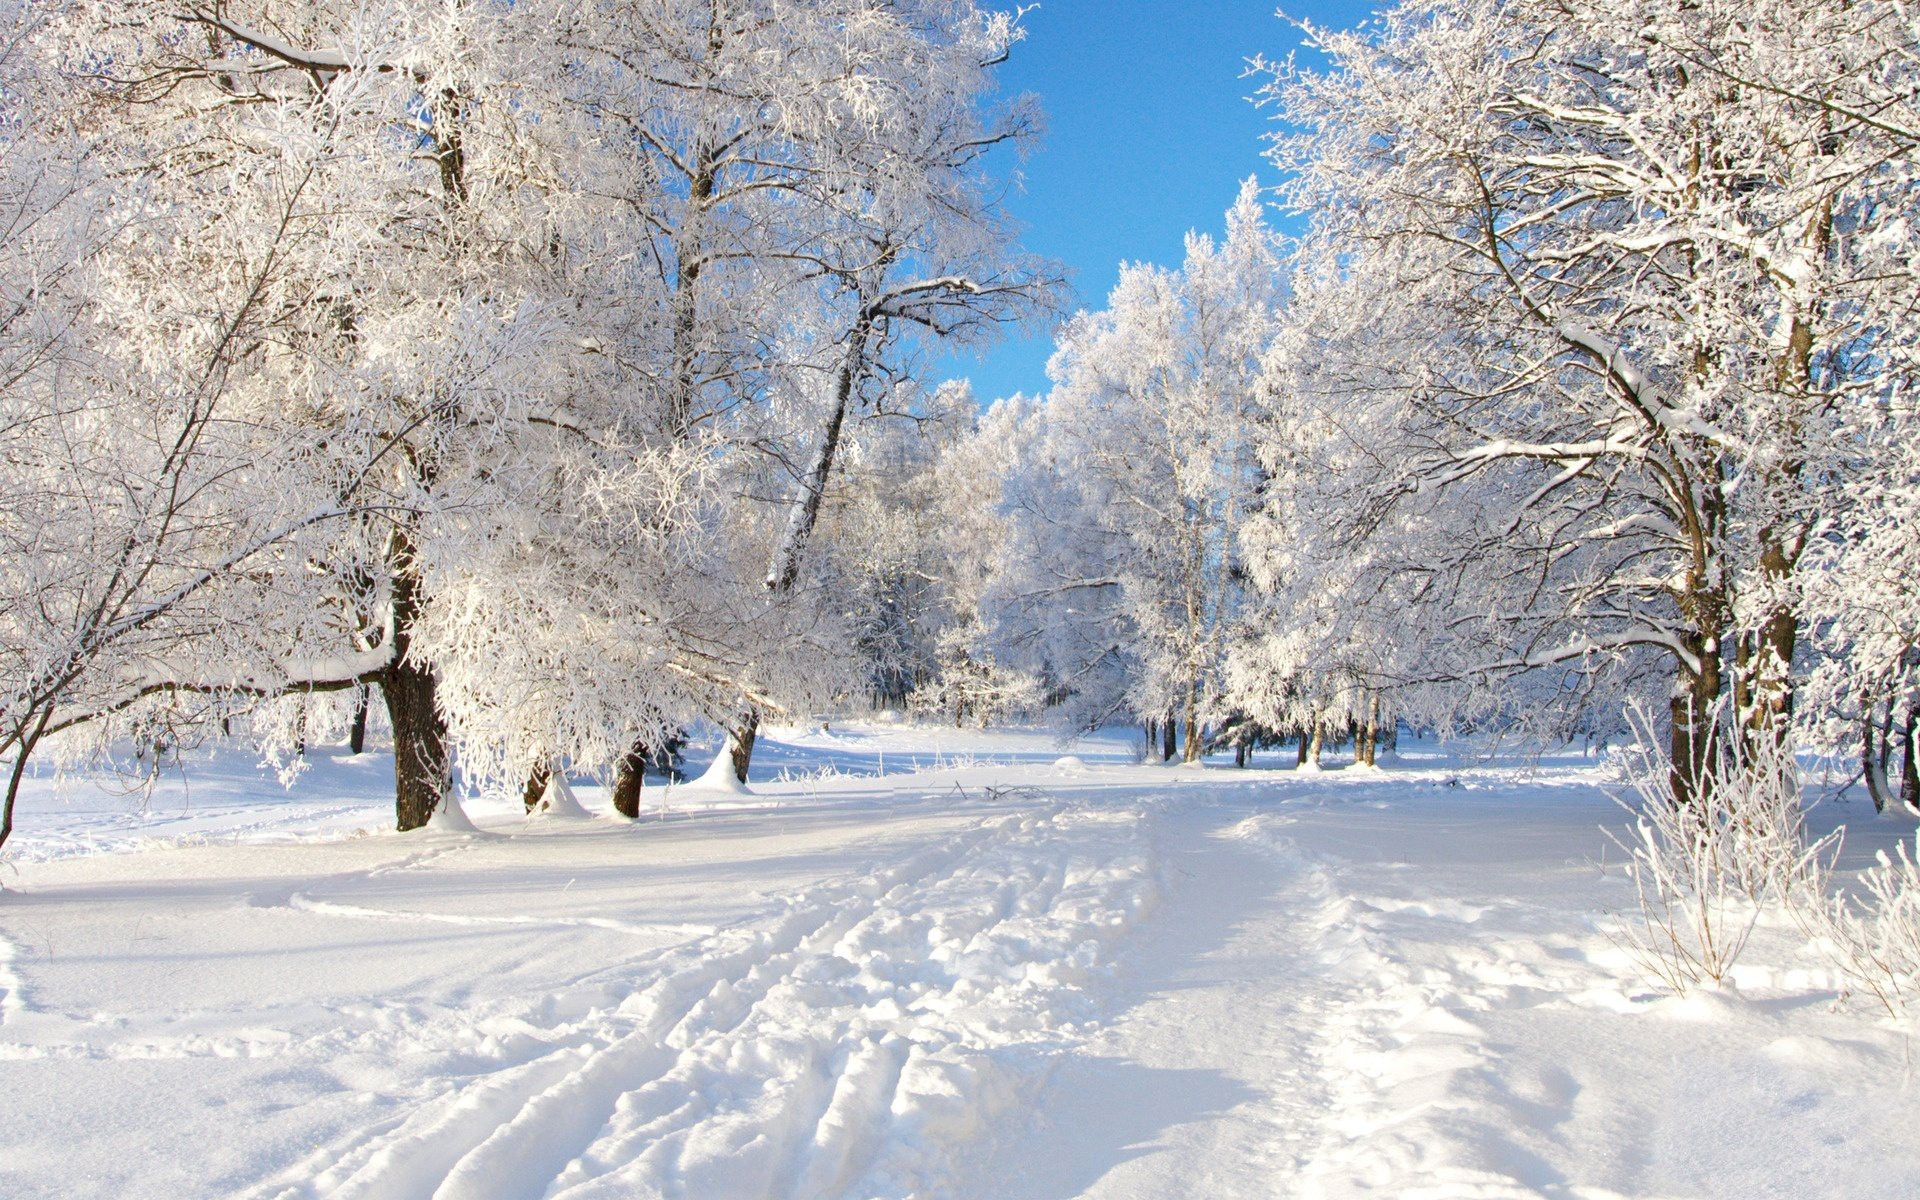 1920x1200 ... Winter Wonderland background ·① Download free stunning High .